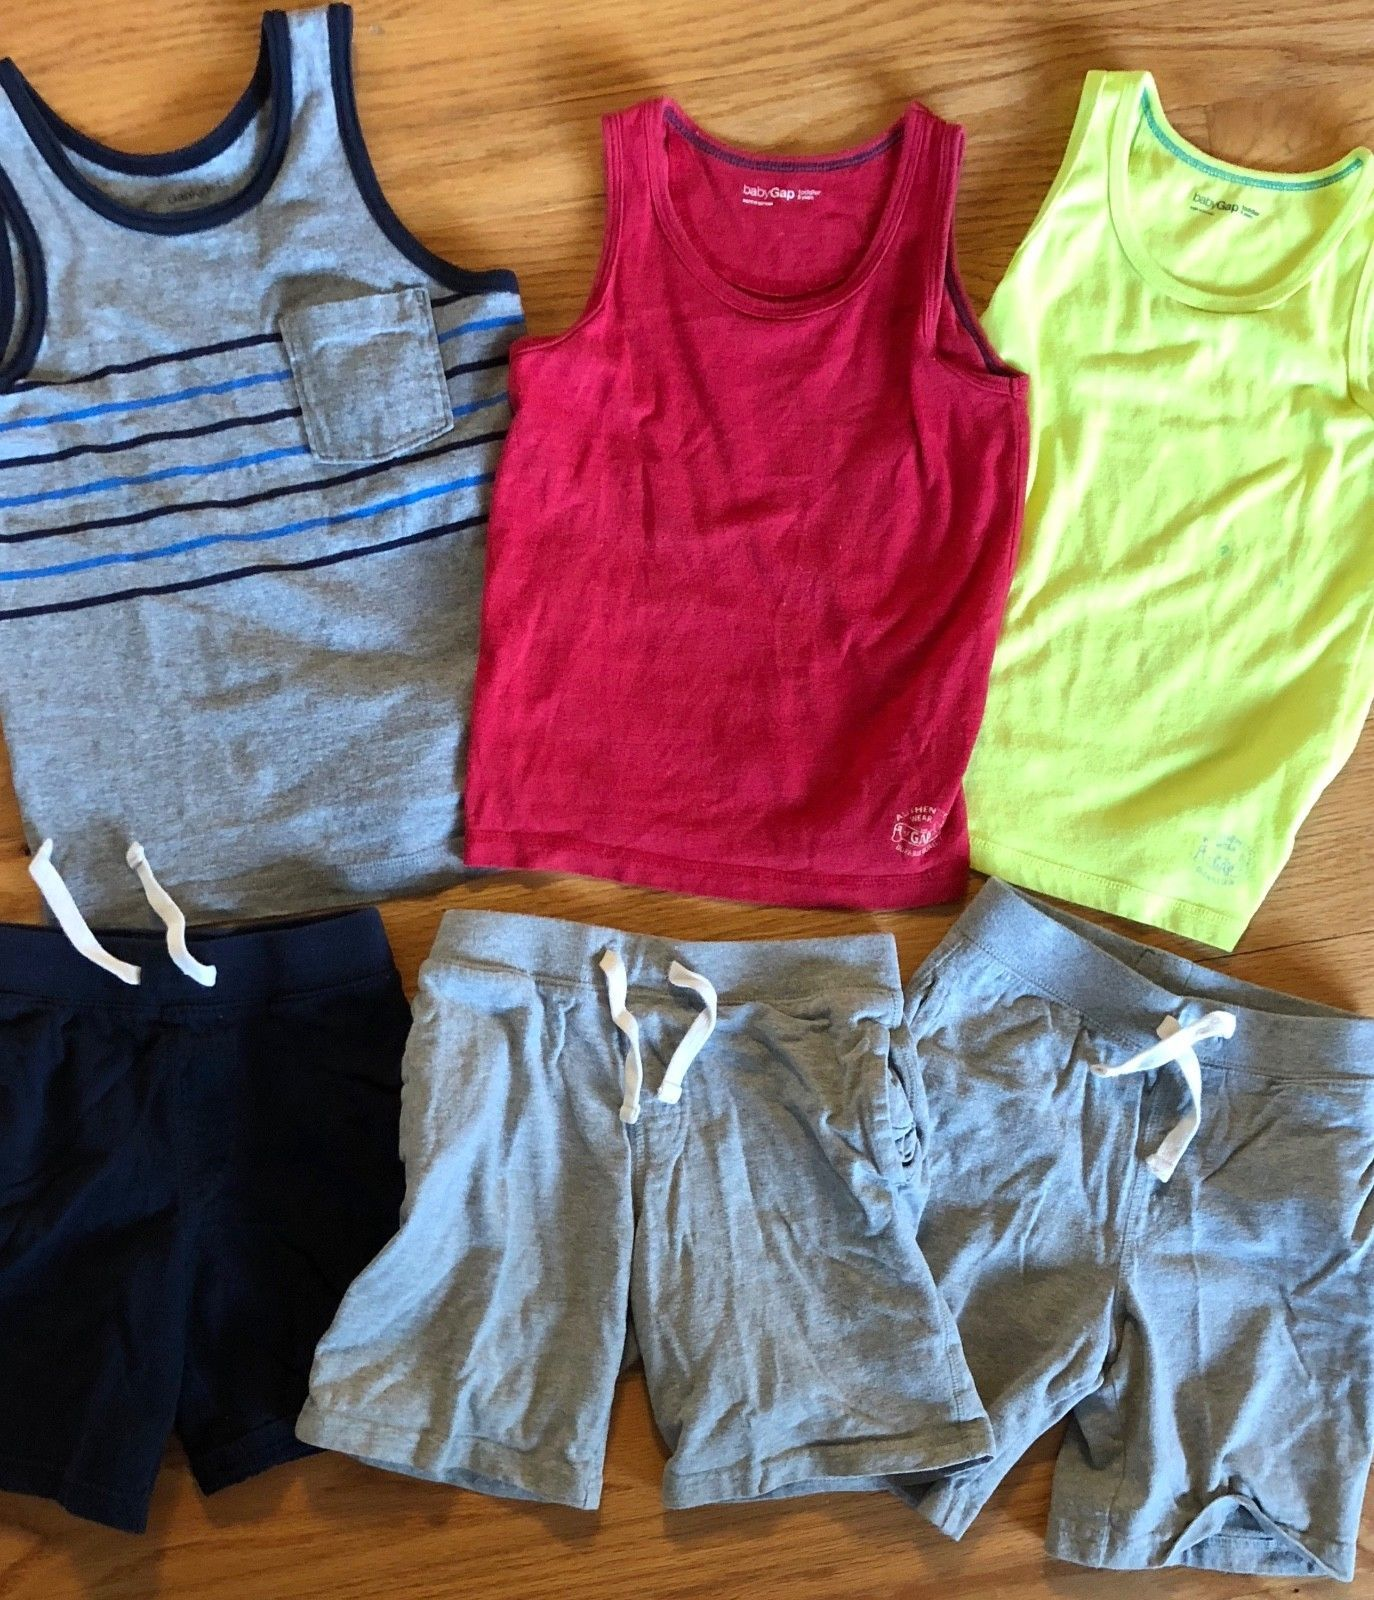 BABY GAP Tank Top + Knit Pull On Shorts Lot of 6 - Summer Outfits Blue Gray Red image 2